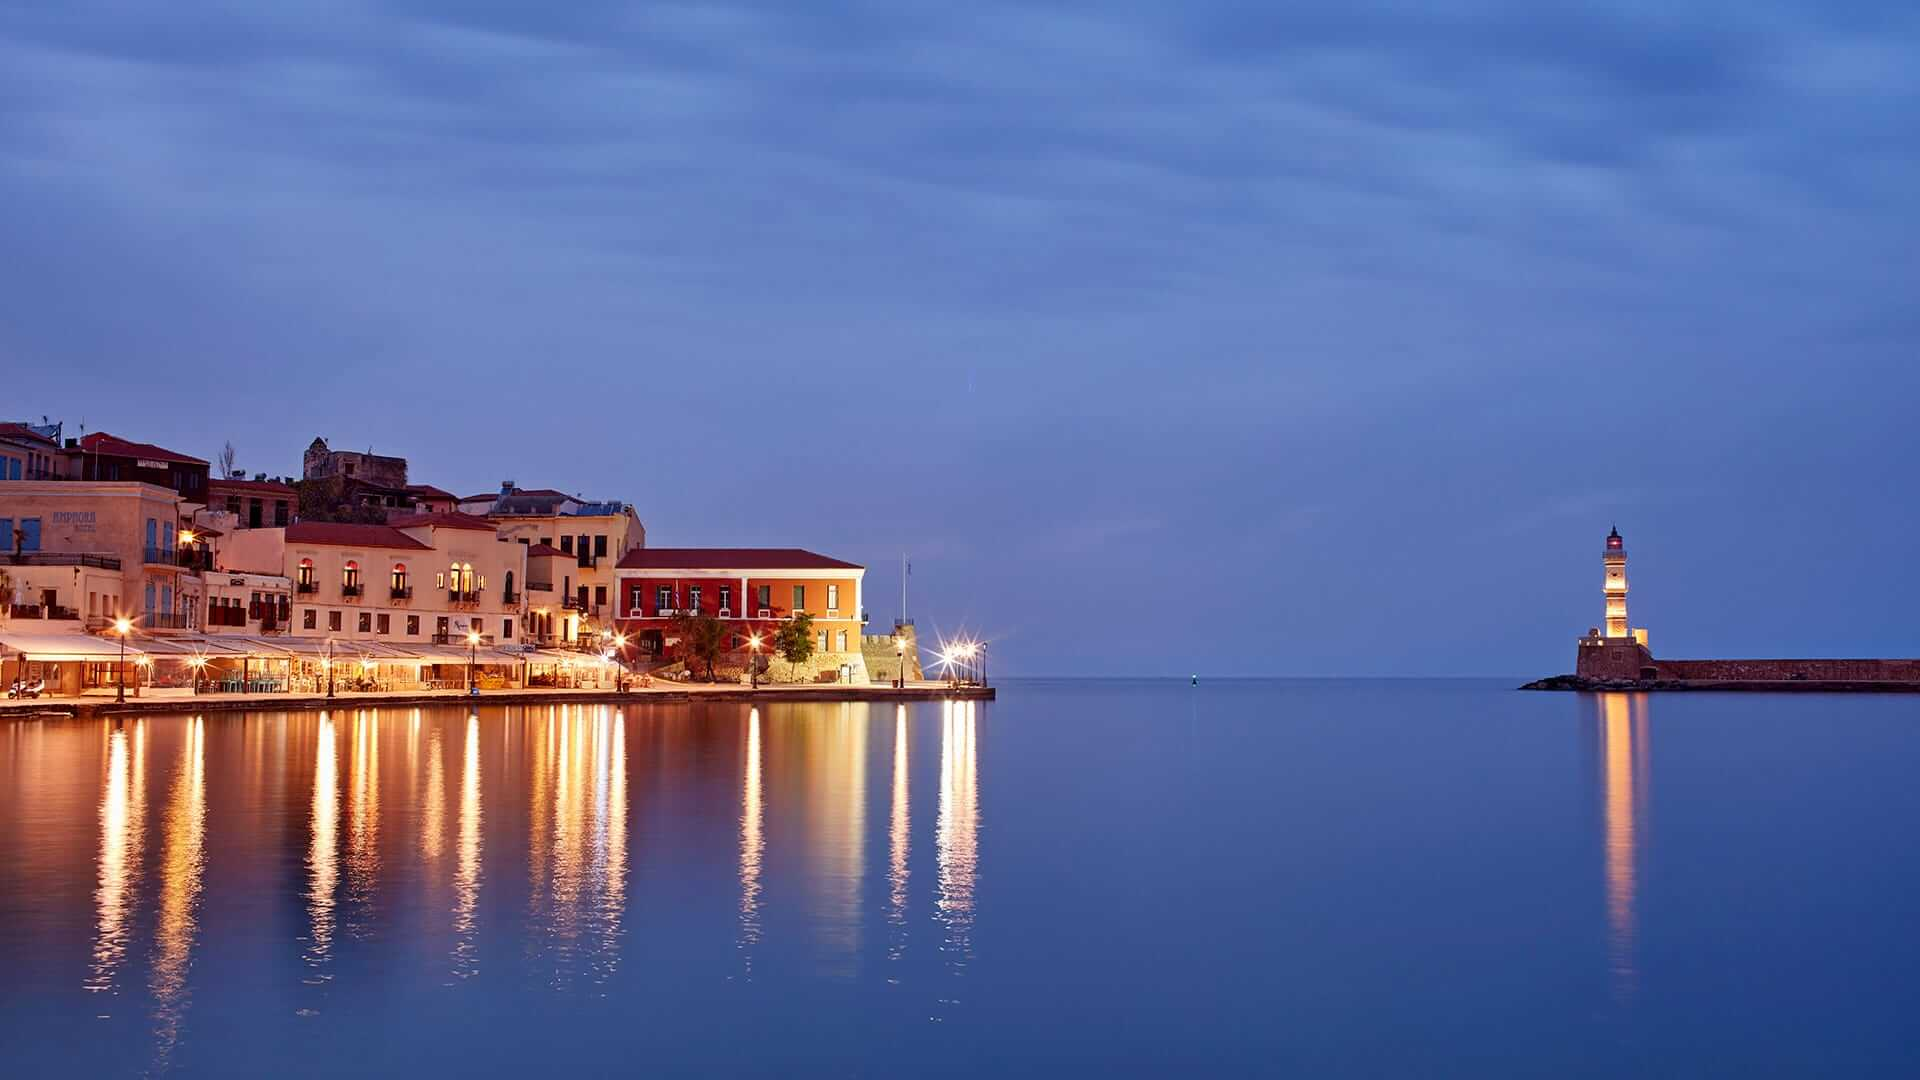 The stunning view of the sea, lighthouse, & Venetian harbour in Chania at dusk